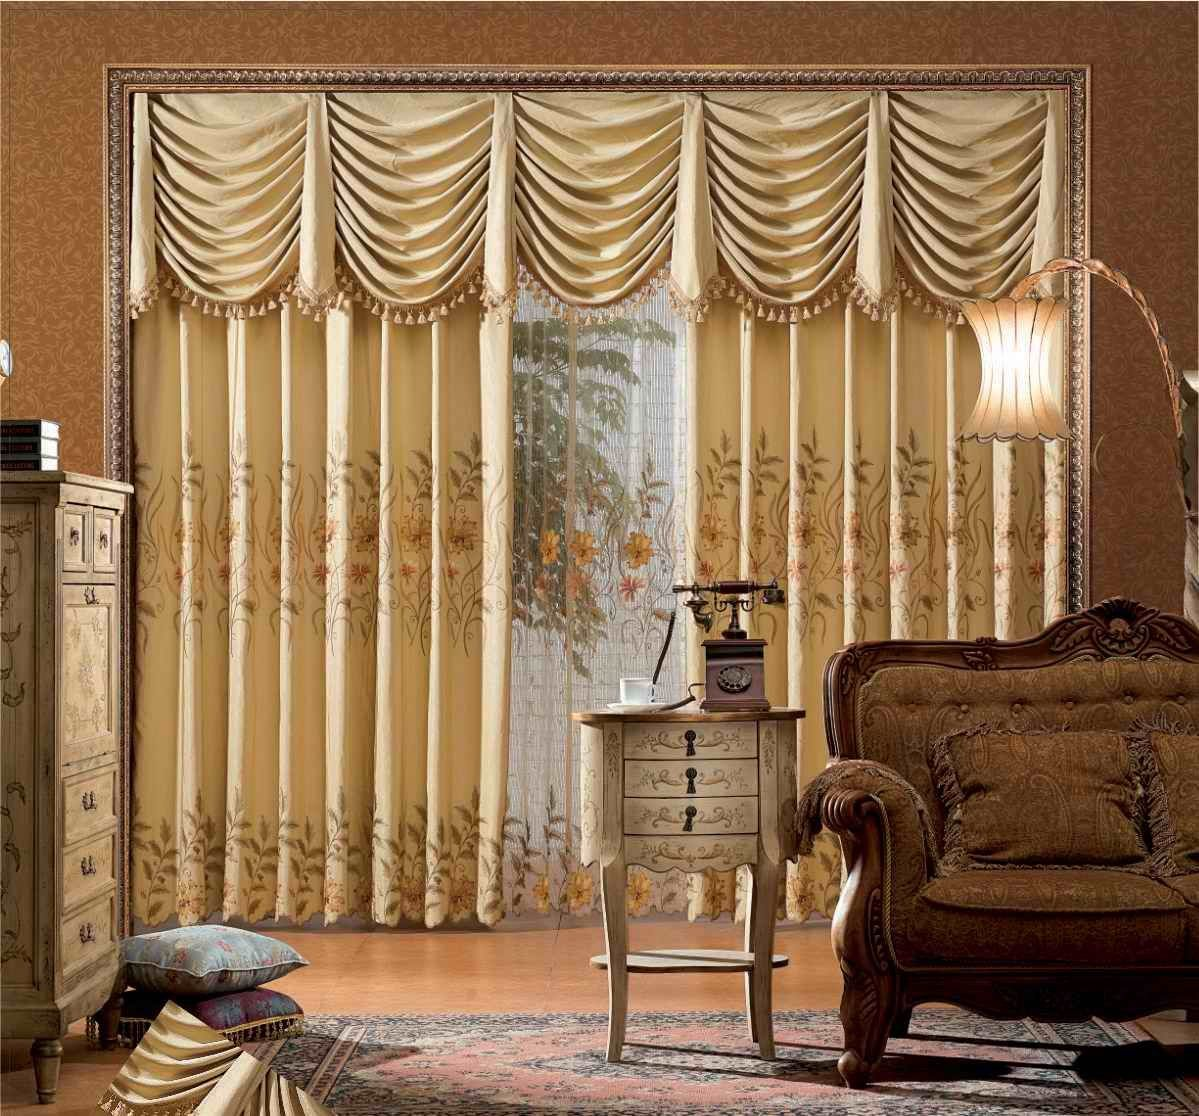 Curtain Design For Living Room Fair Make Modern Living Room Curtains  Httphighlifestylewp Design Decoration